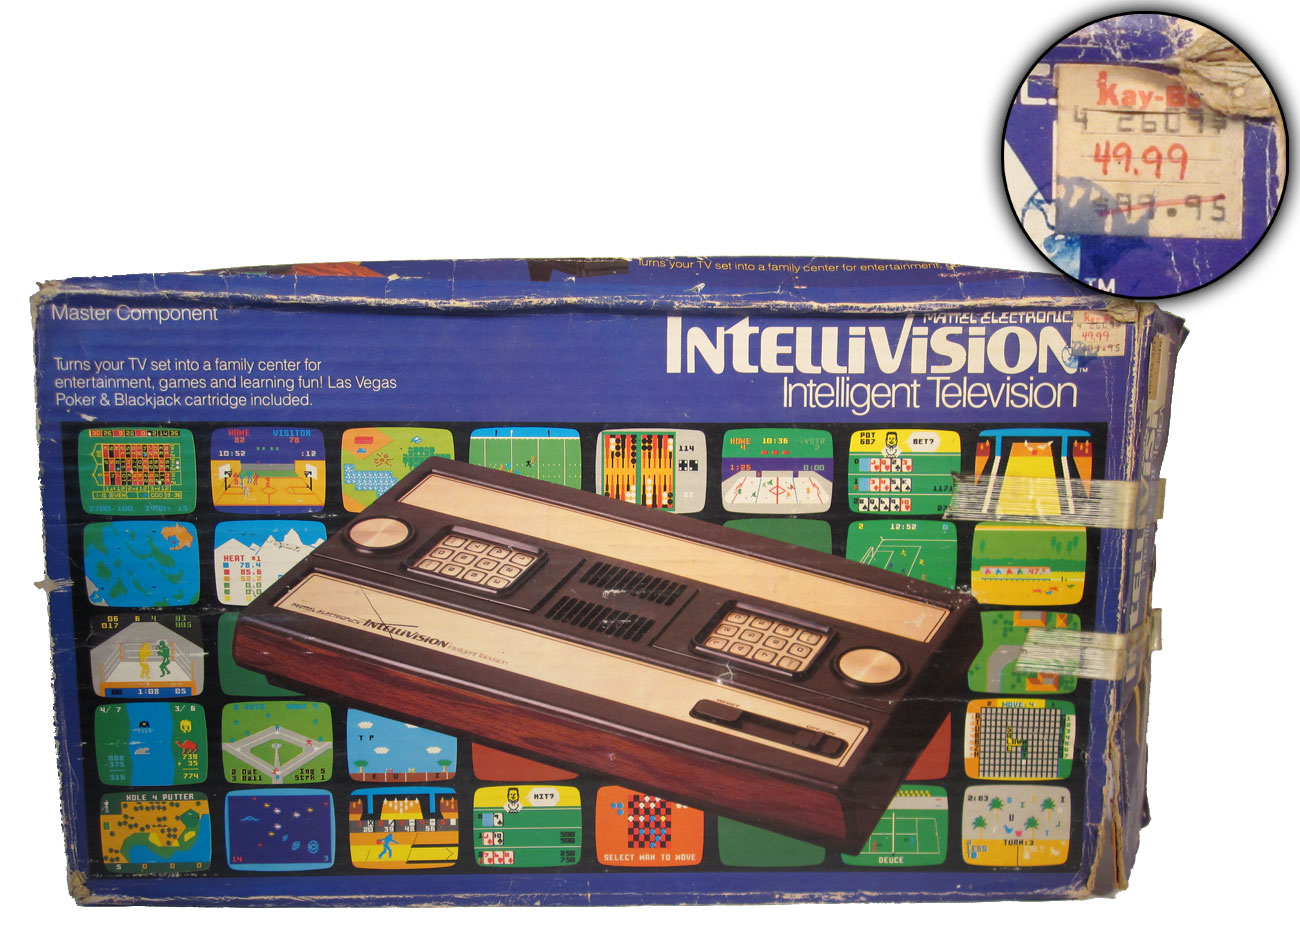 Mattel Electronics Intellivision Was The First Serious